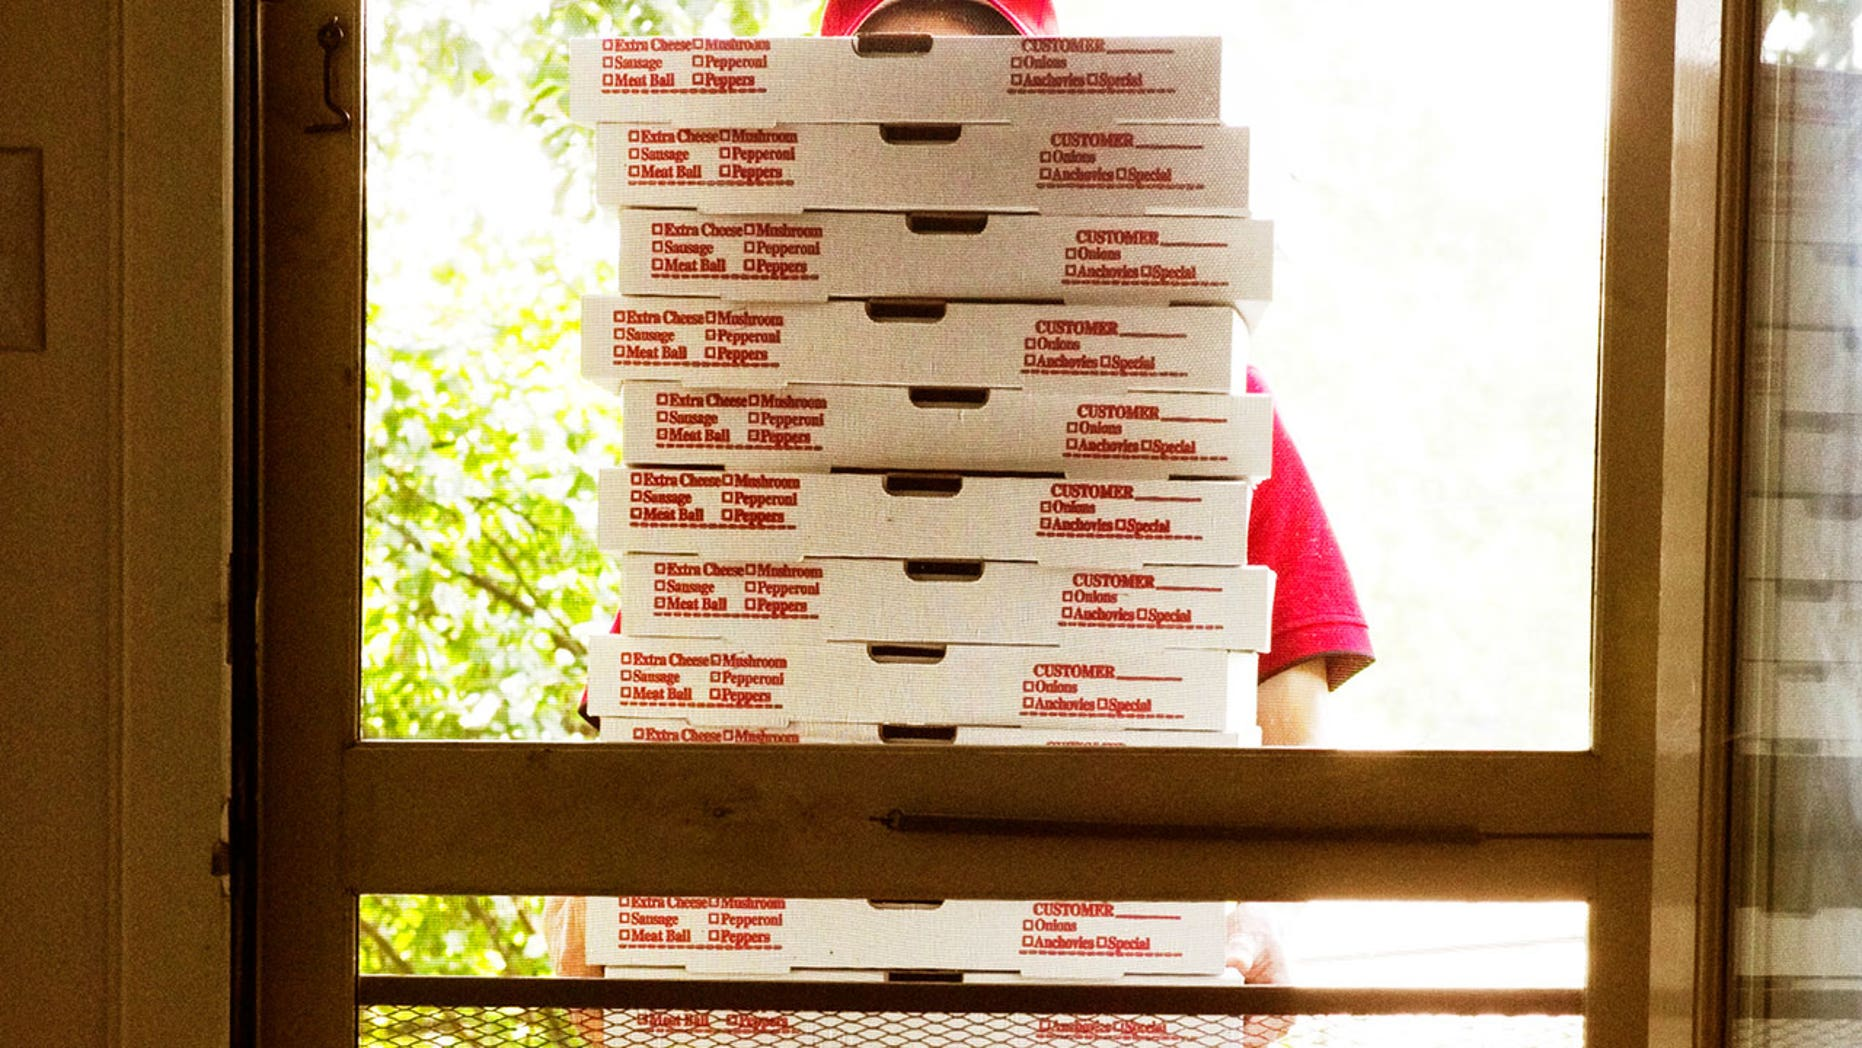 """It's so irritating, I don't even get my work done anymore,"" the lawyer says of the unwanted pizza deliveries."